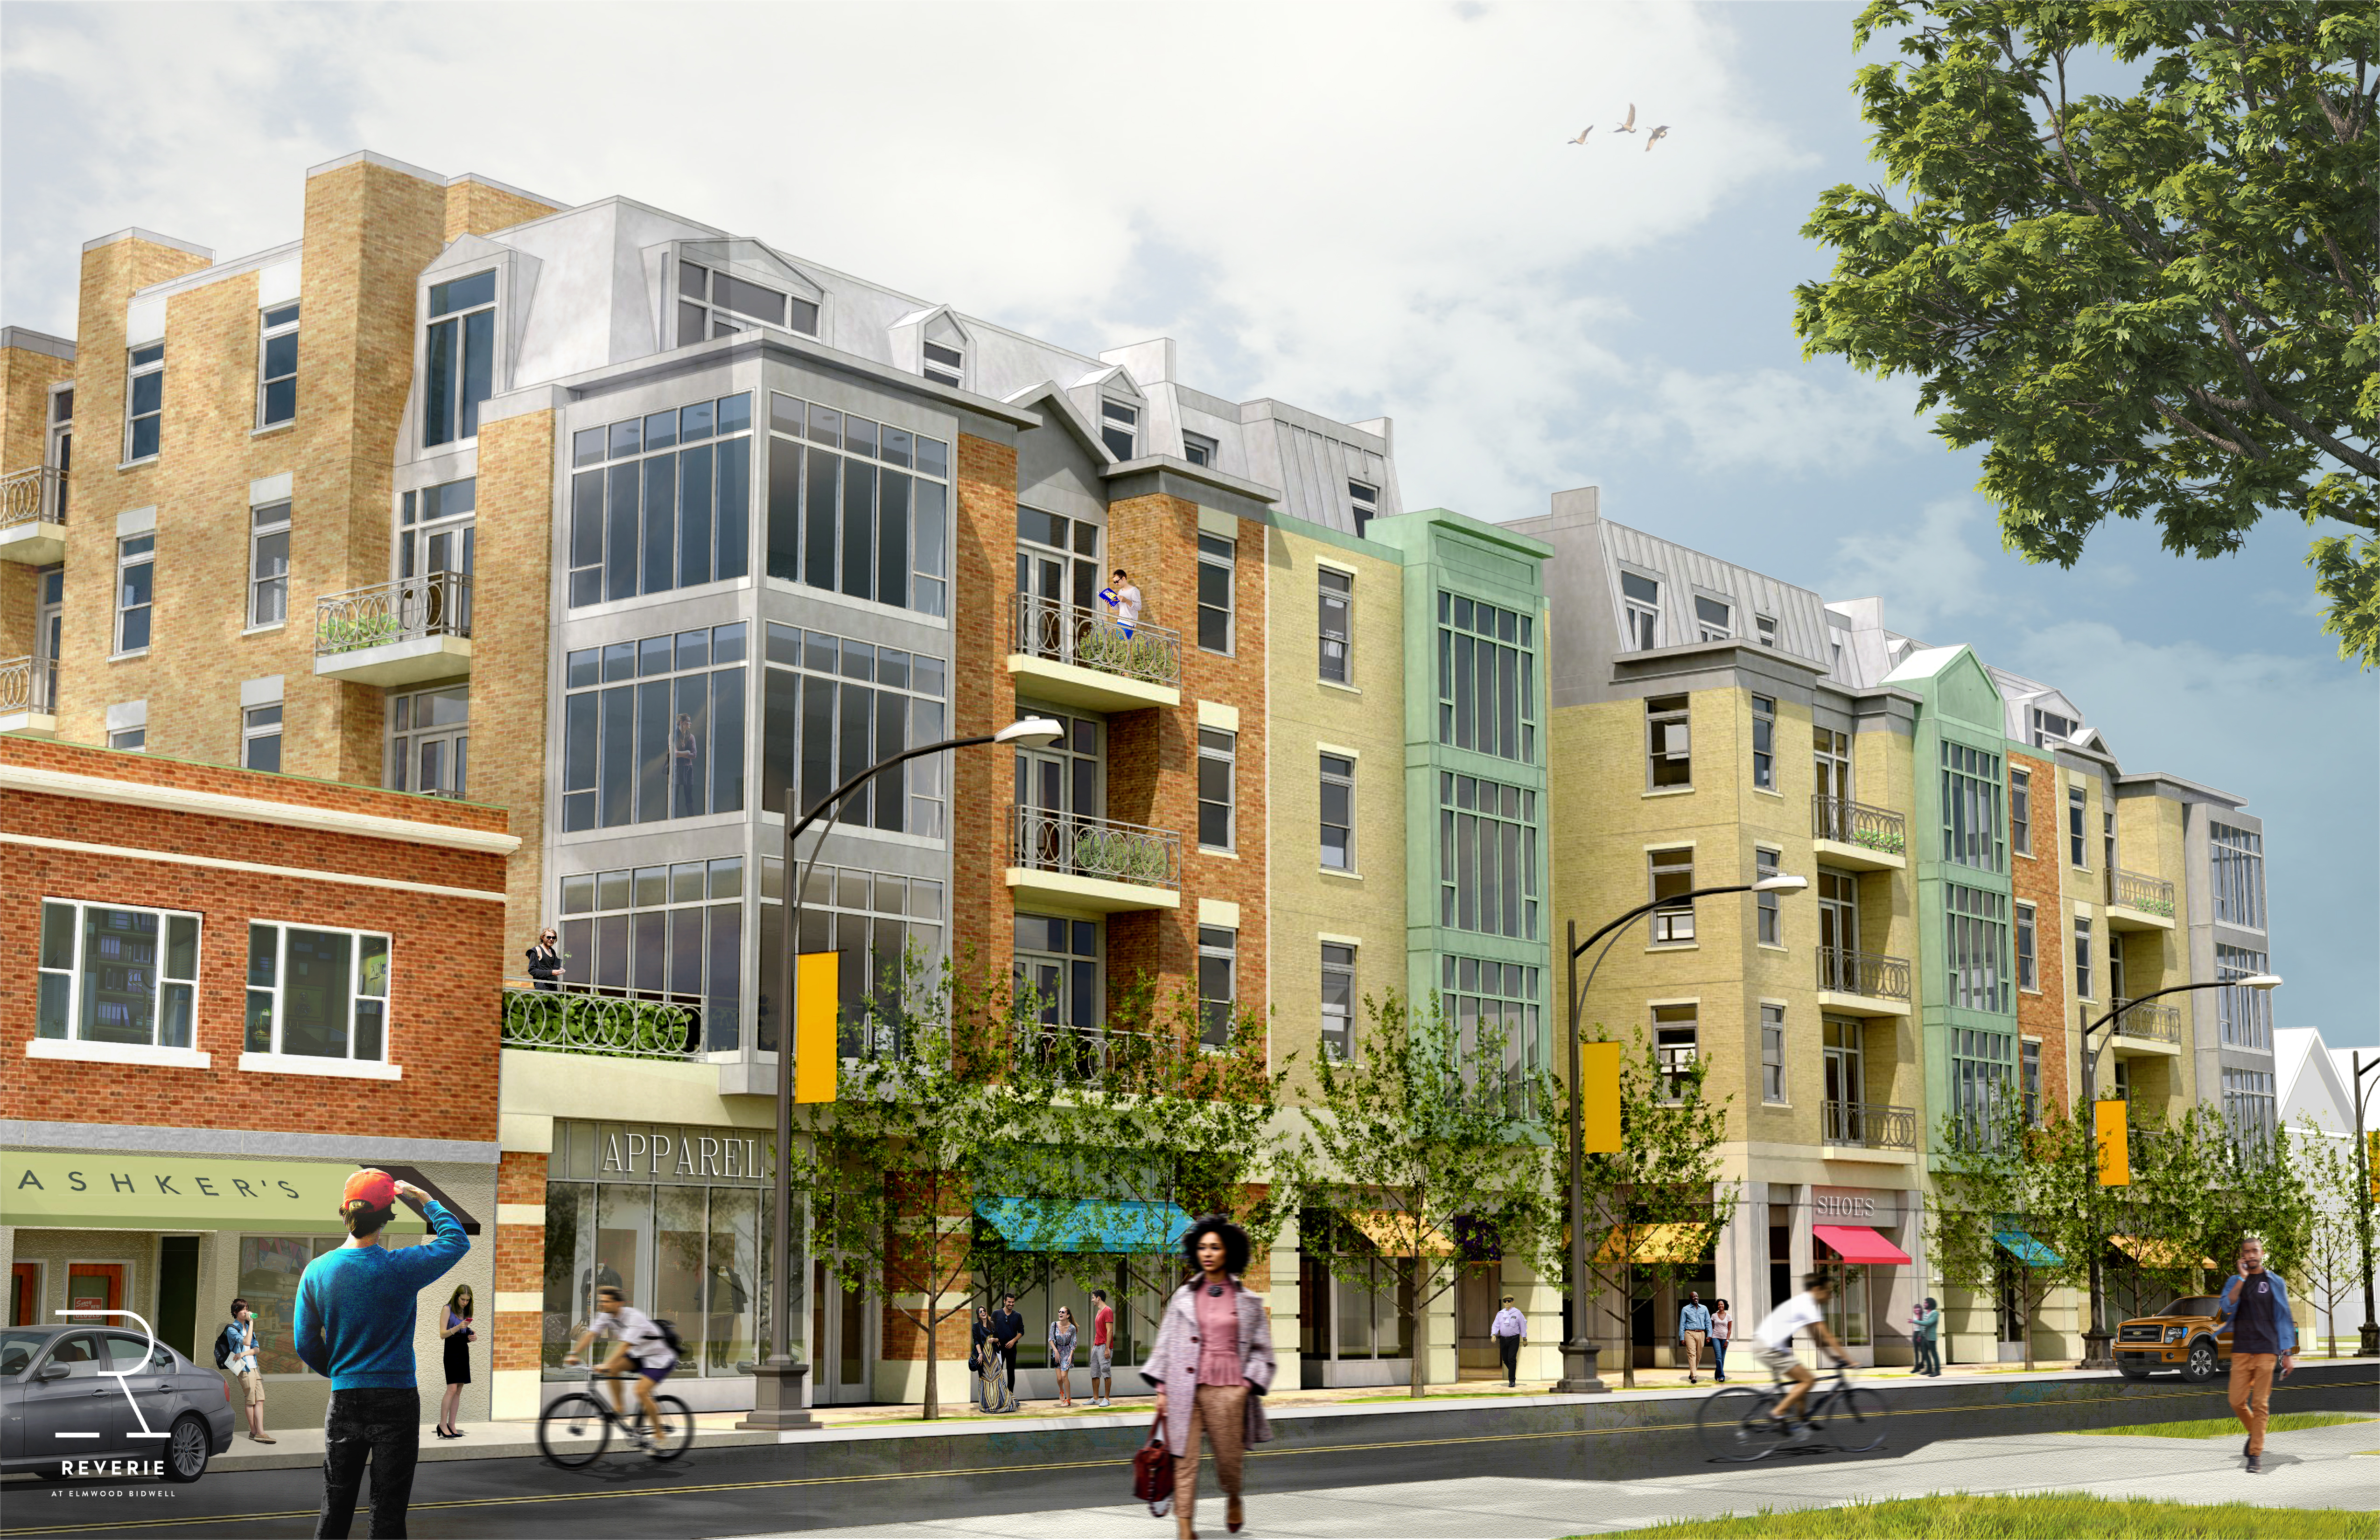 The Reverie project on Elmwood Avenue has undergone several revisions, but remains upopular with many who attend public meetings on it.